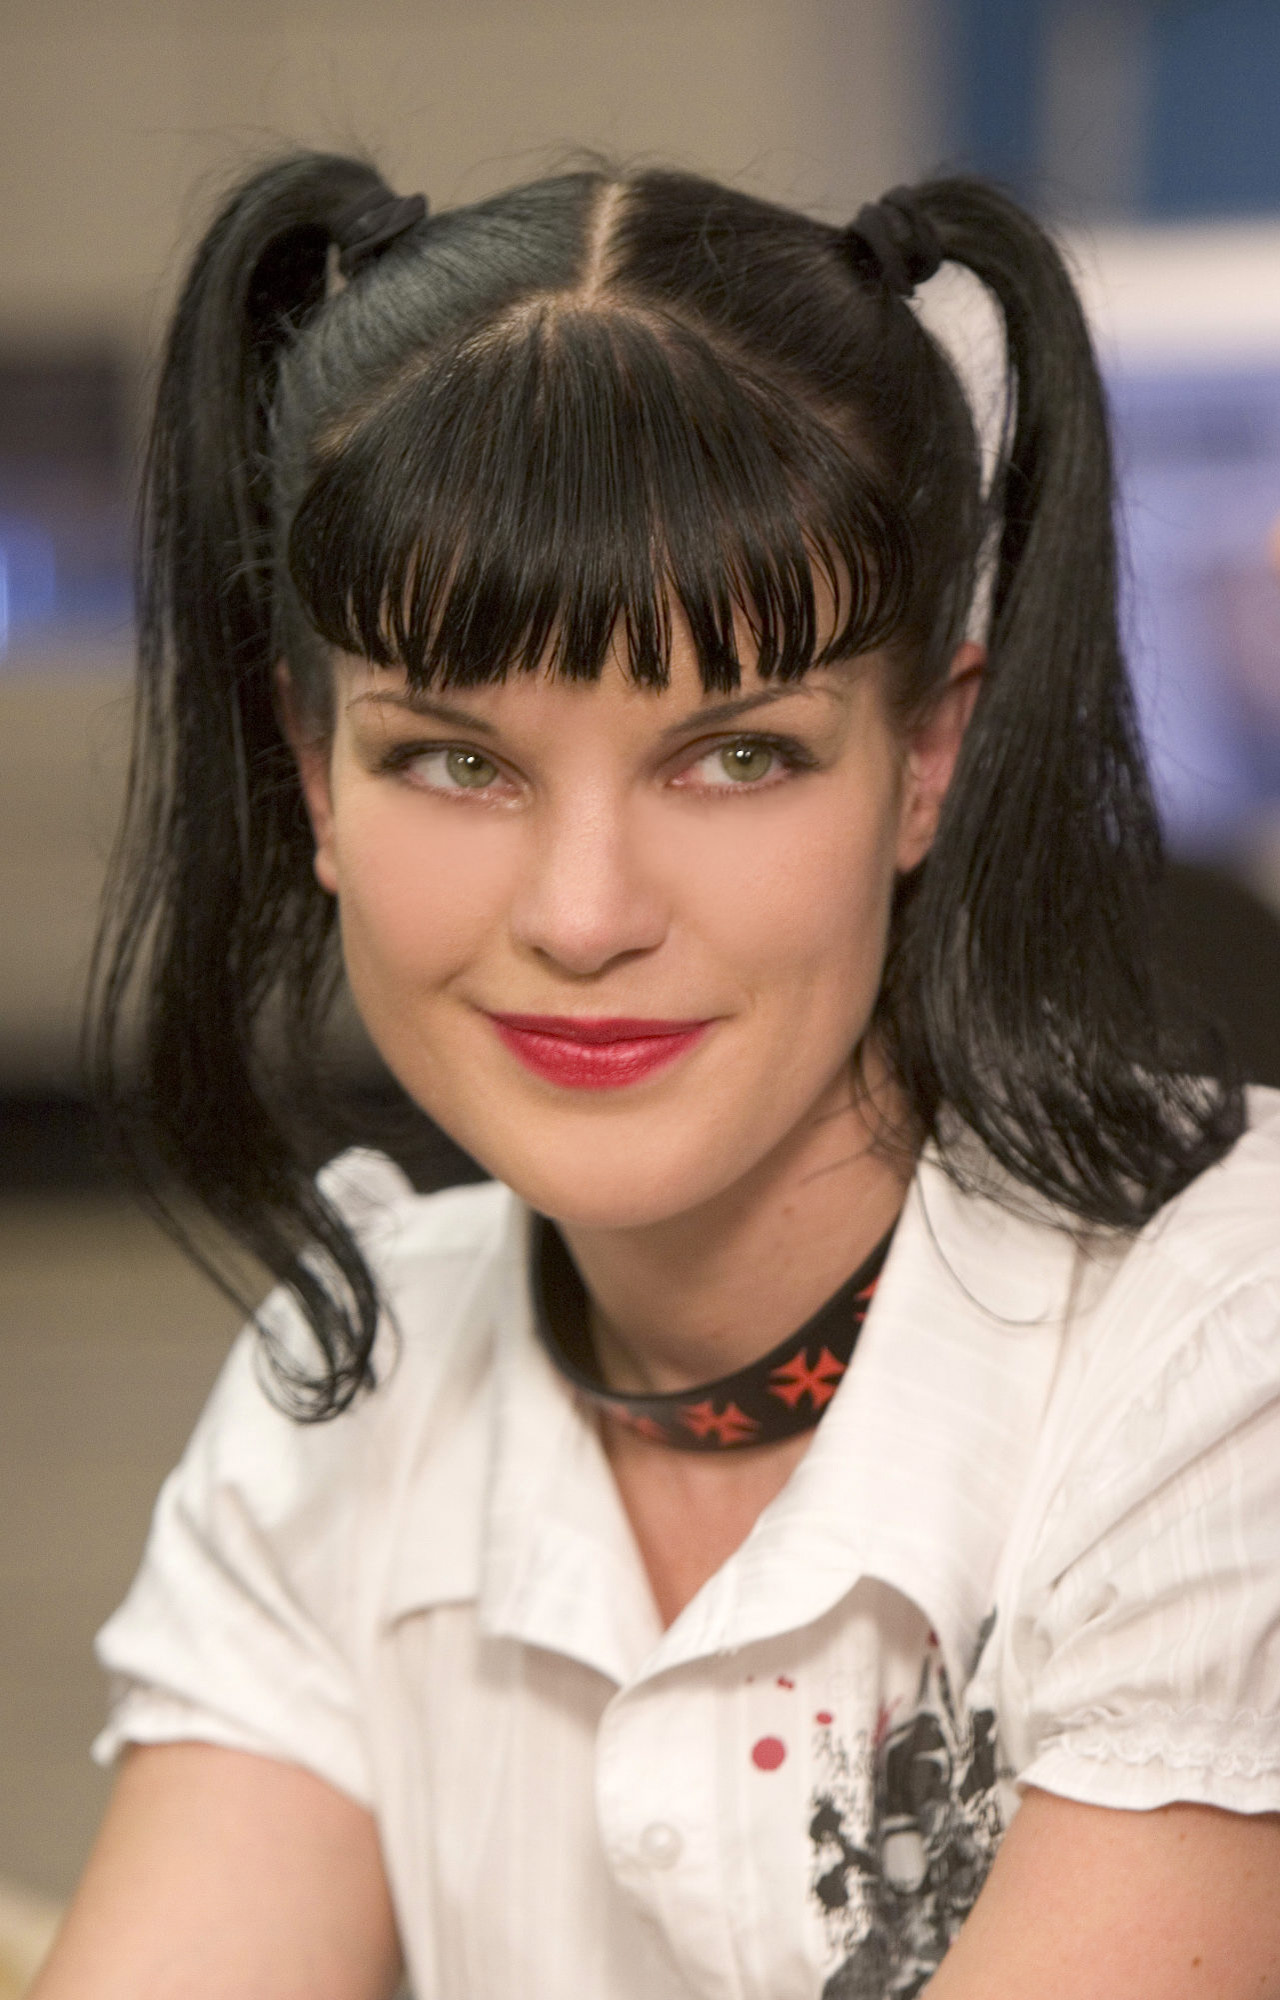 Pauley Perrette Ncis I Saw Her At Comic Con Too Hard To Believe